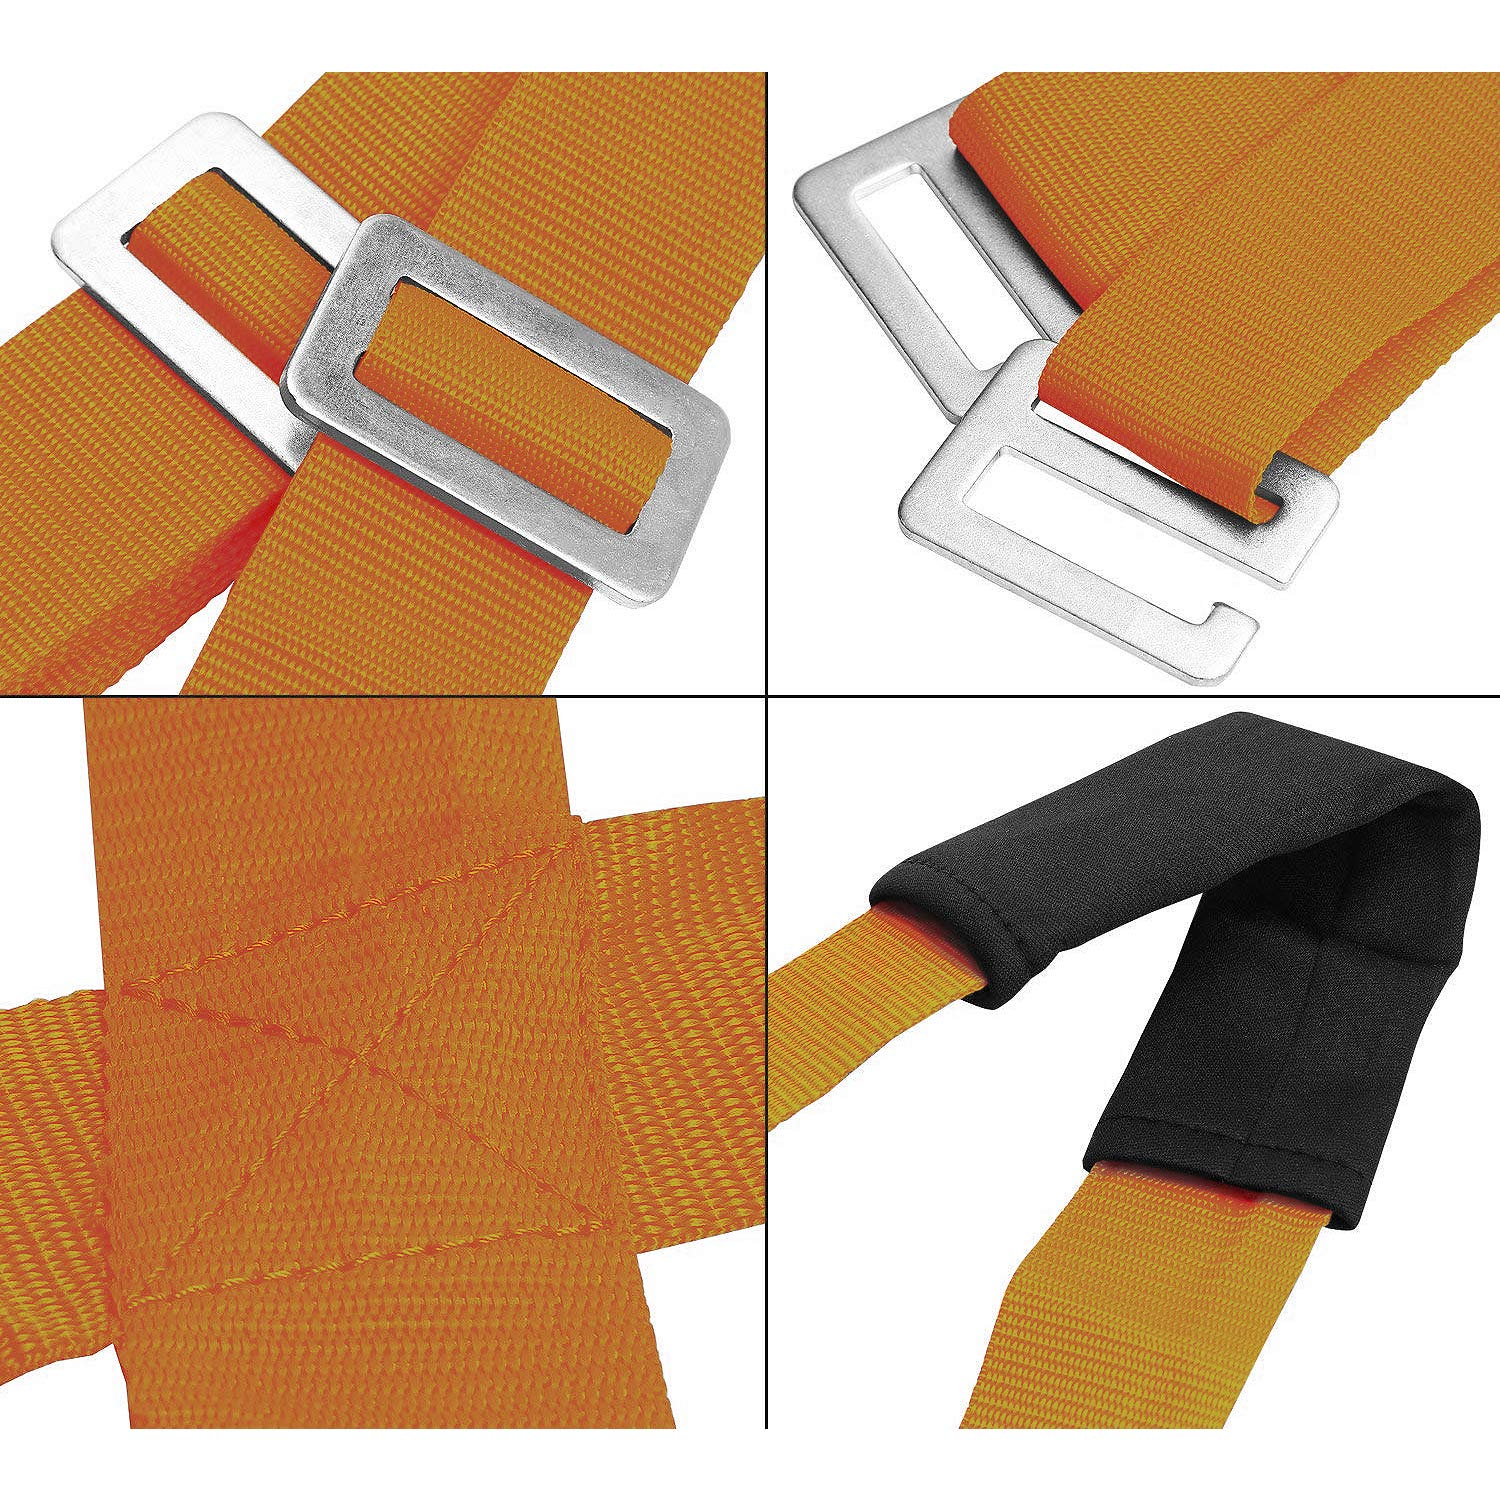 Moving and Lifting Straps for Furniture Construction,Lifting Straps Support 600Lbs Heavy Object,Carrying straps With Bonus Gloves By LUESBOEK Boxes Mattress